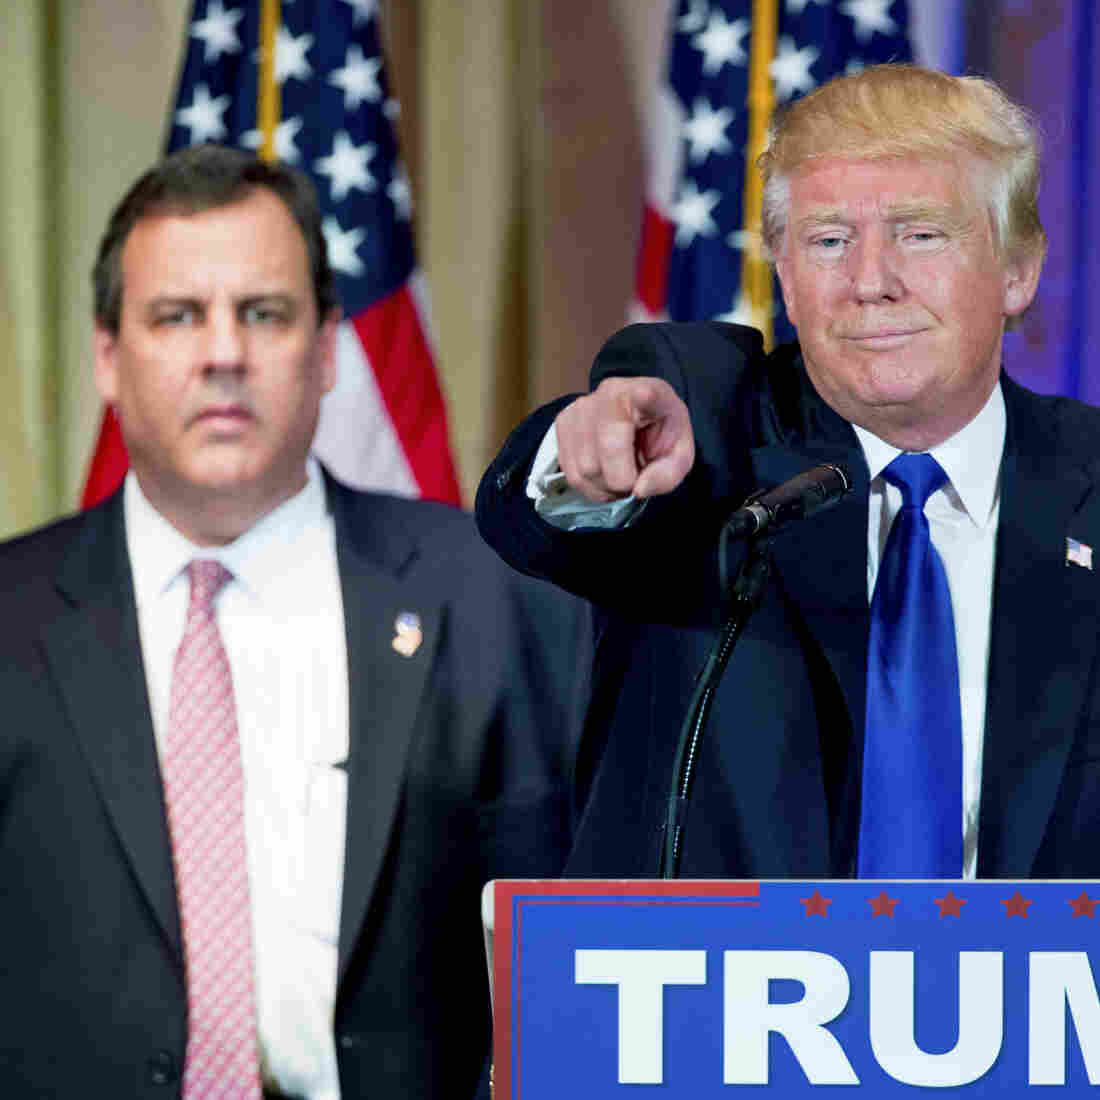 New Jersey Gov. Chris Christie looks on as Republican presidential candidate Donald Trump takes questions from members of the media during a news conference on Super Tuesday primary election night.